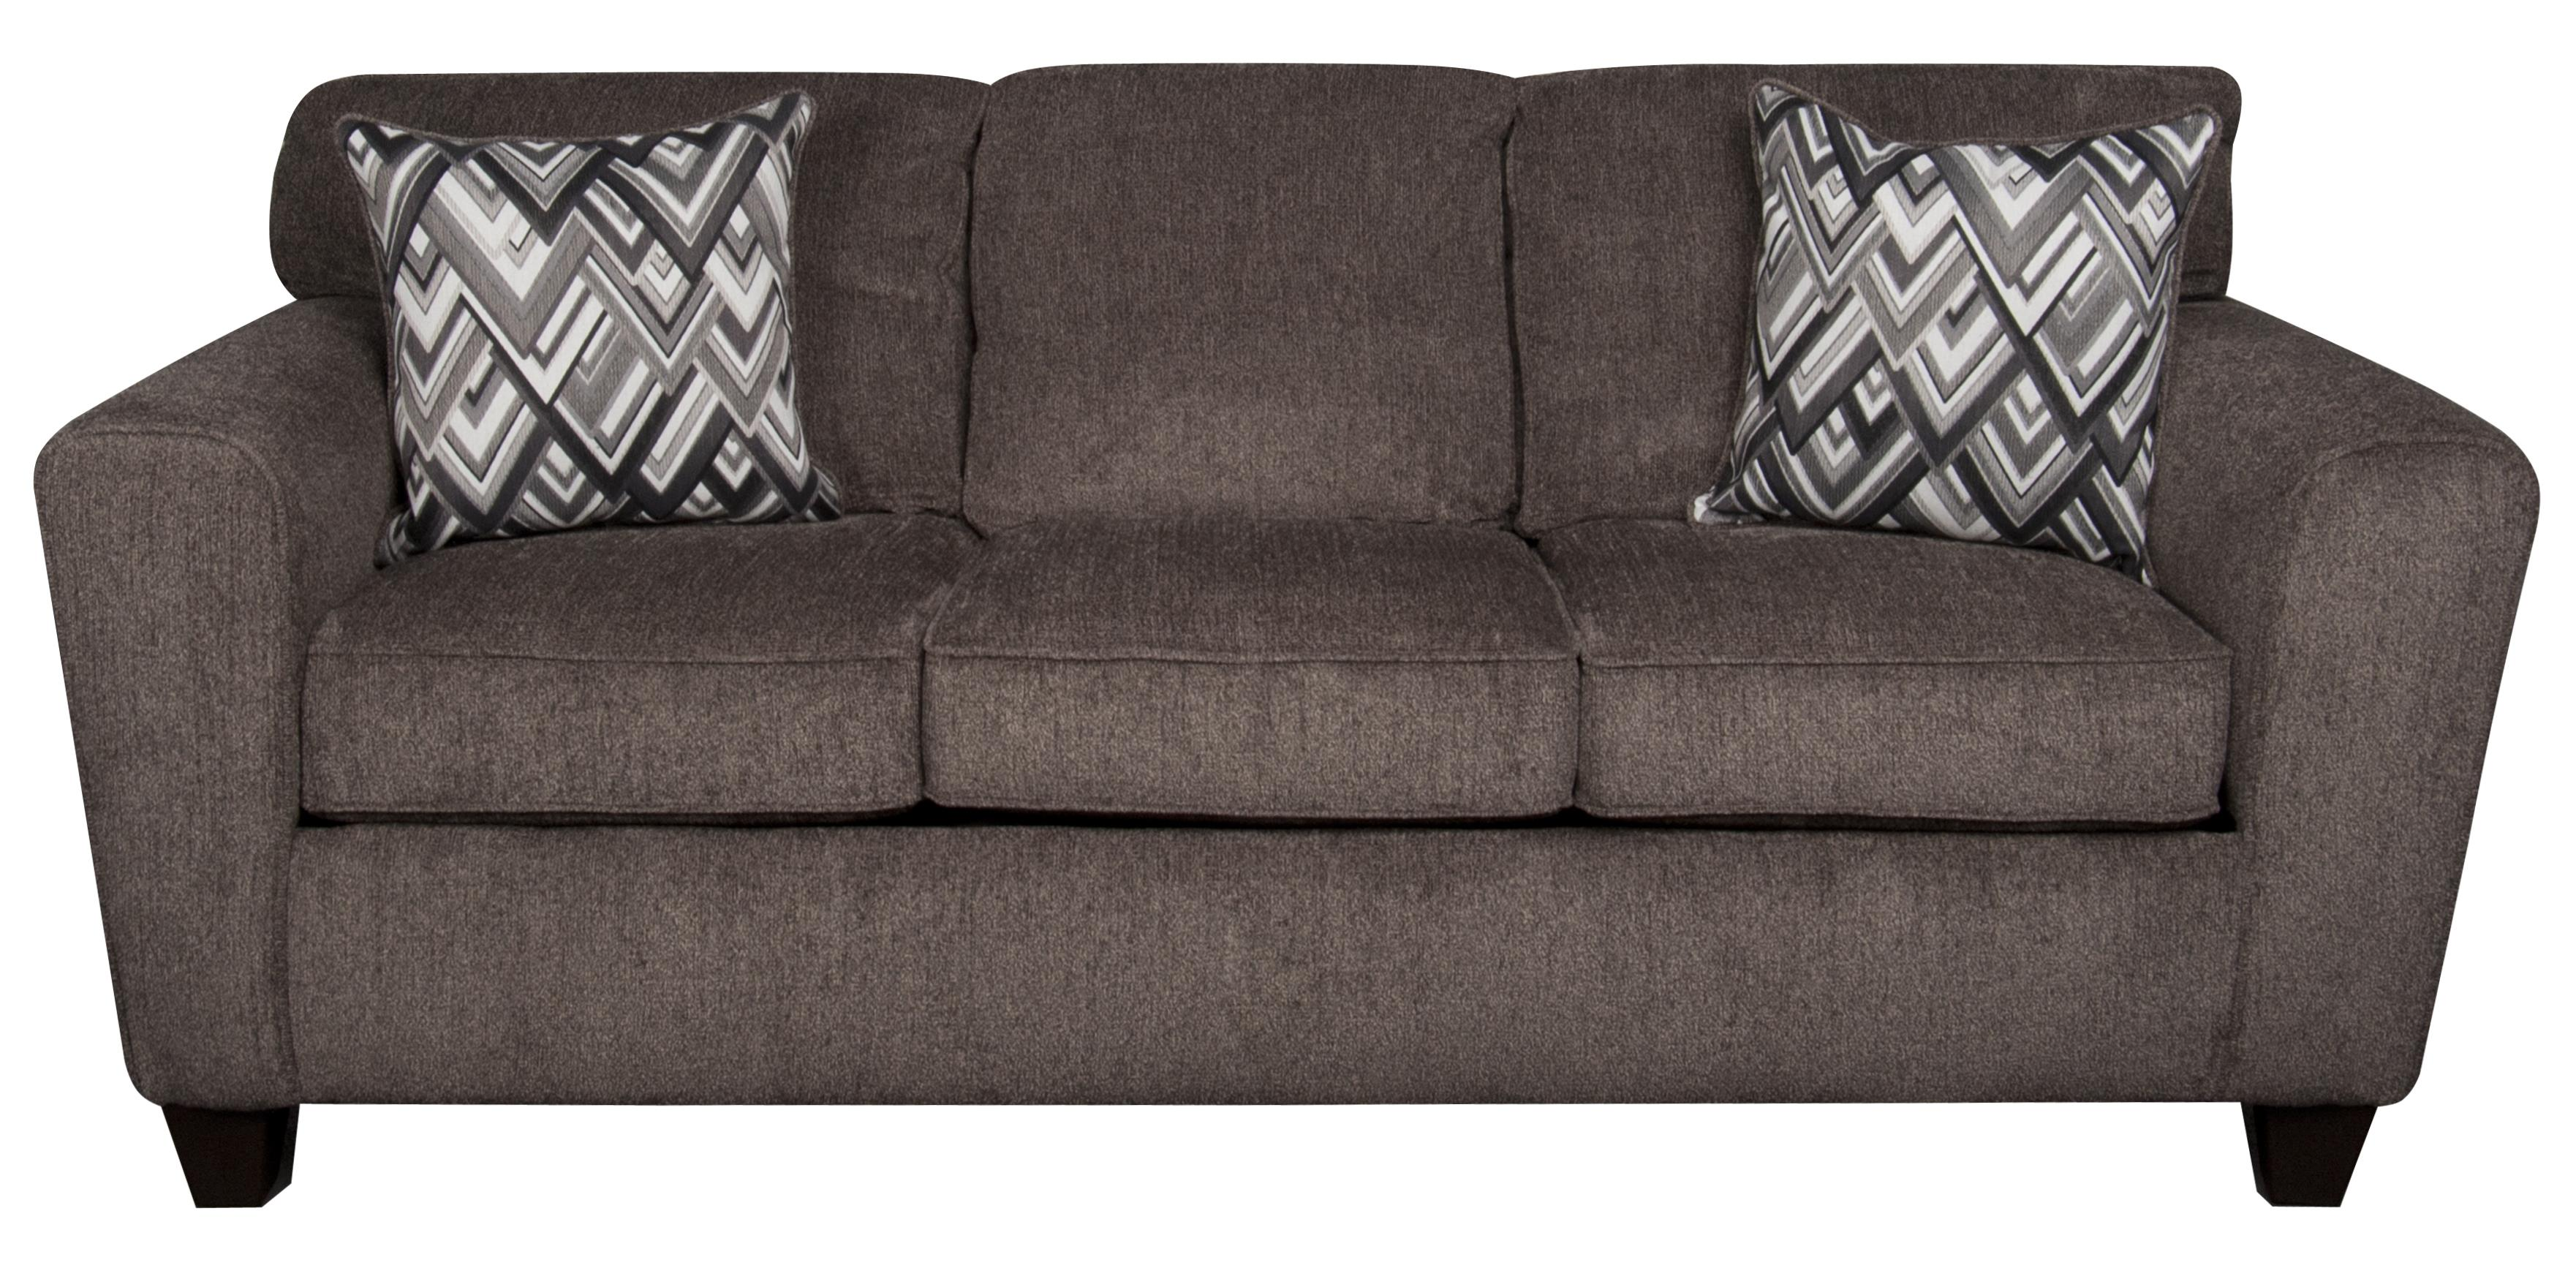 Morris Home Furnishings Wilson Wilson Contemporary Sofa   Item Number:  799945207